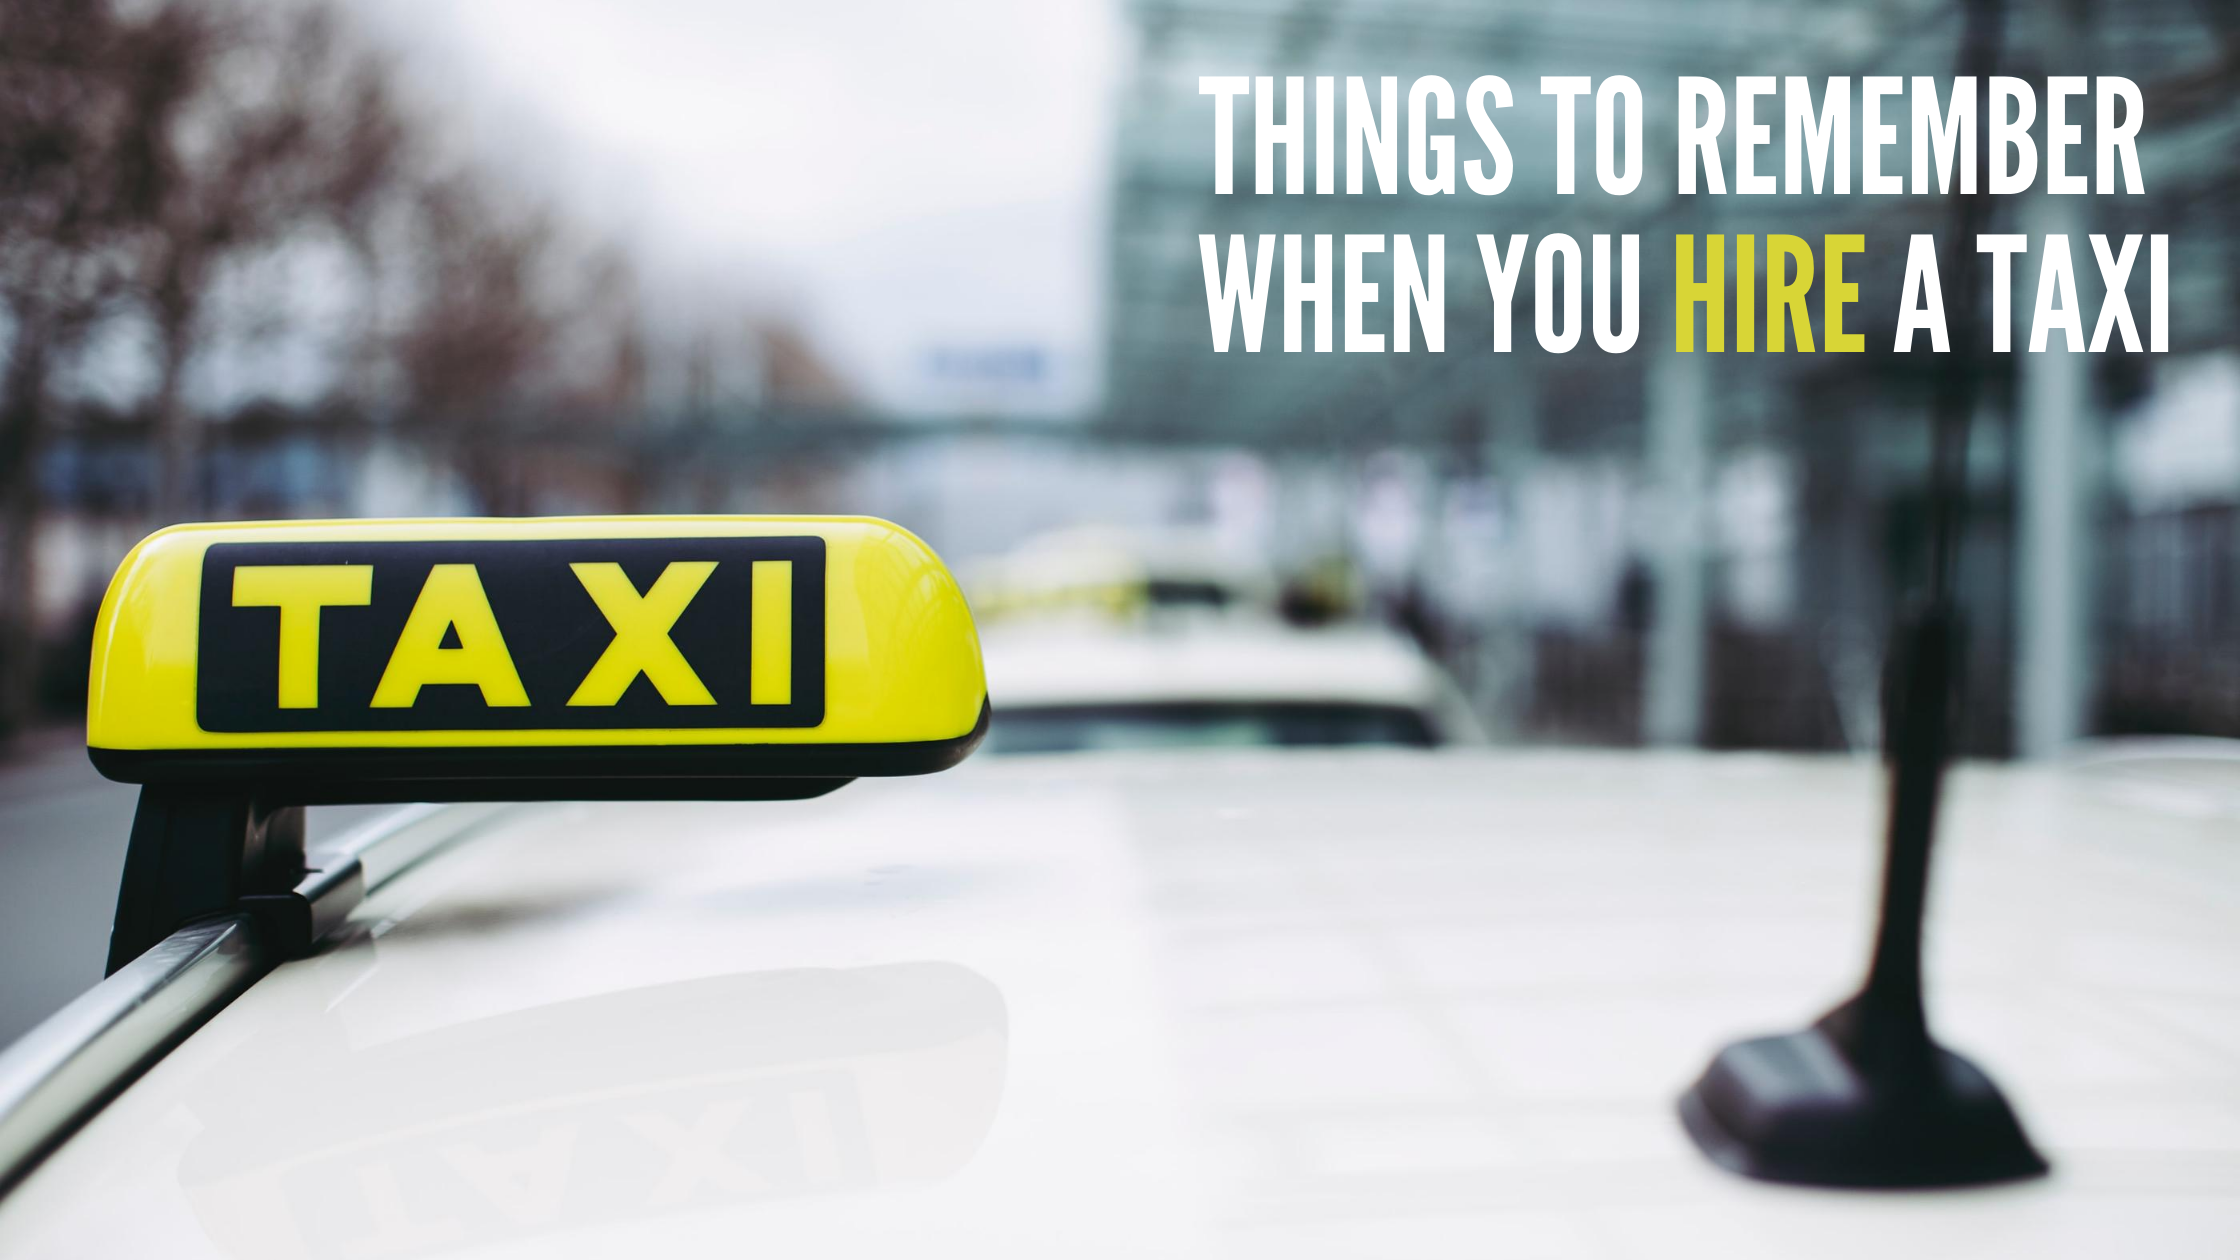 10 Things To Remember When You Hire A Taxi